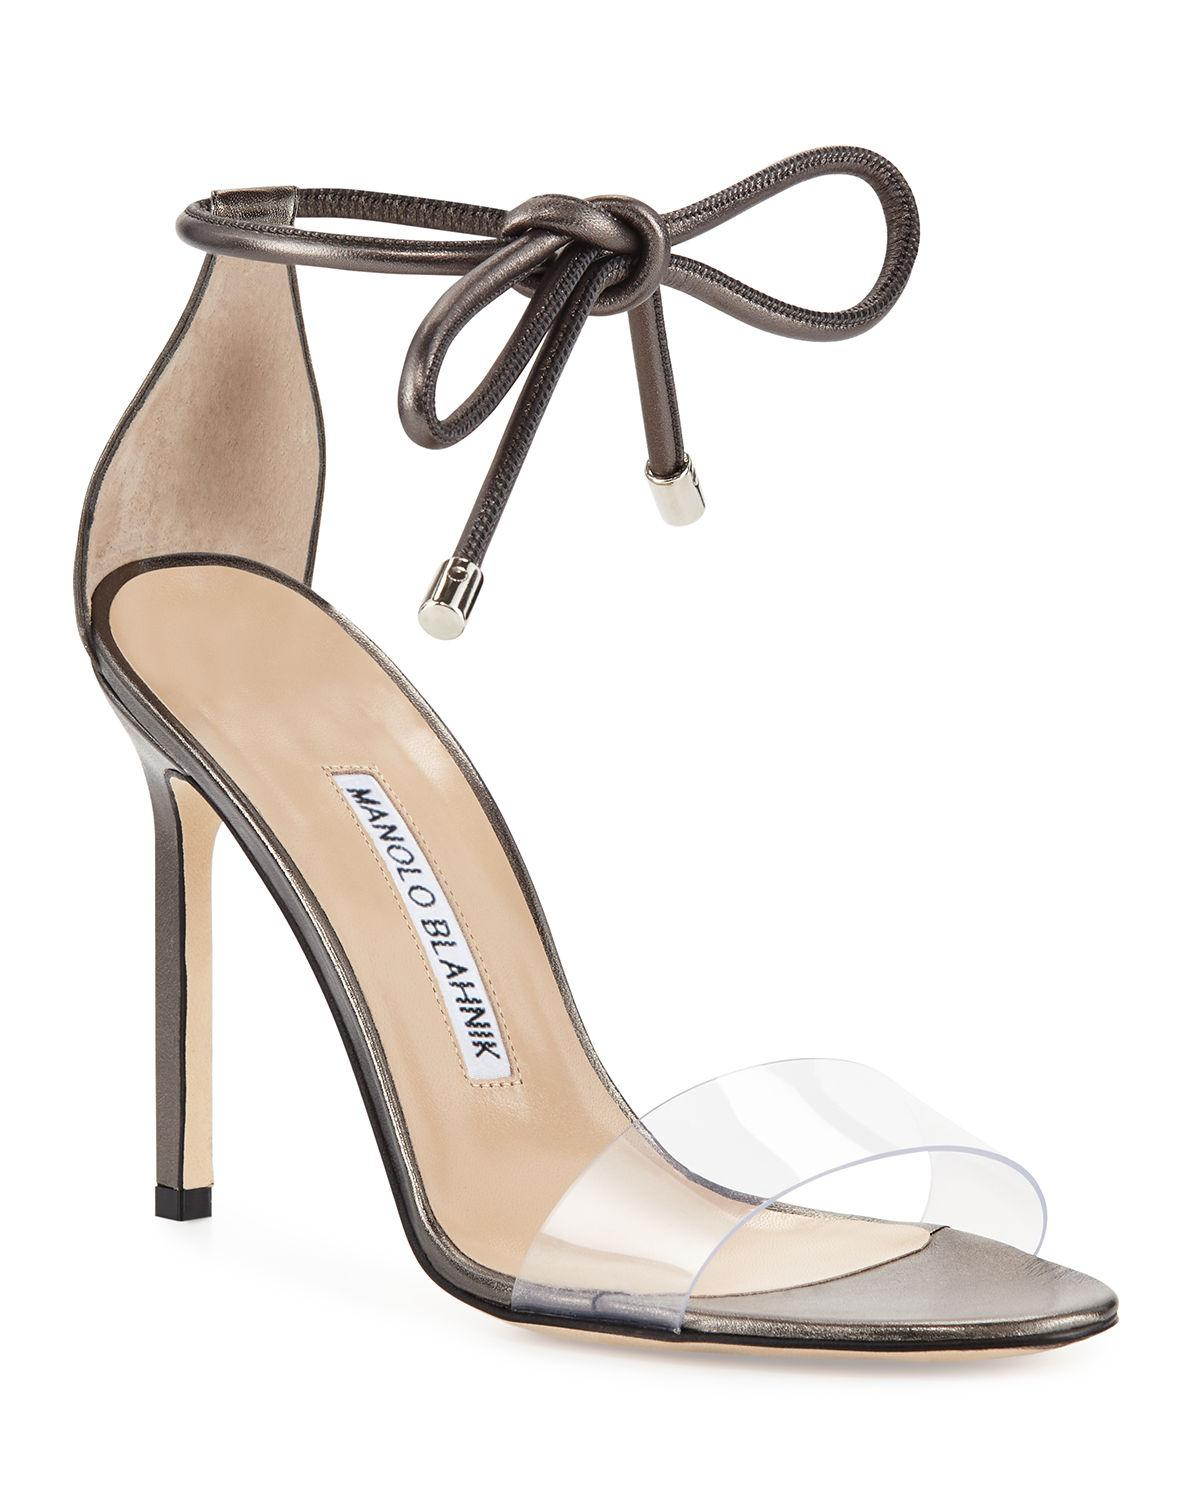 65d374ecd55 Lyst - Manolo Blahnik Estro Leather   Pvc Ankle-wrap Sandals in Metallic